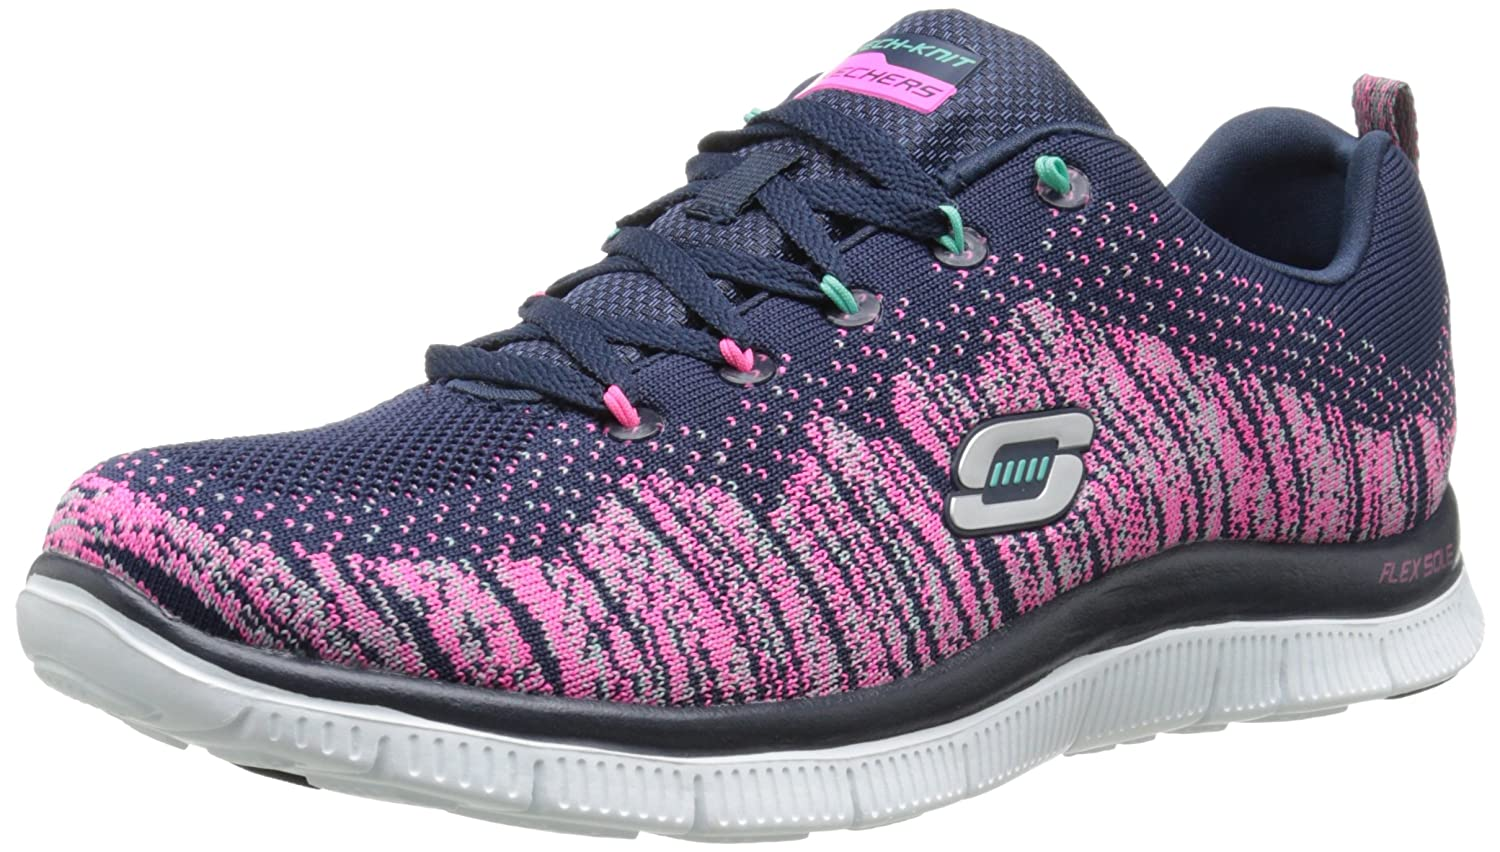 Skechers Flex Appeal Talent Flair, Zapatillas para Mujer: Amazon.es: Zapatos y complementos